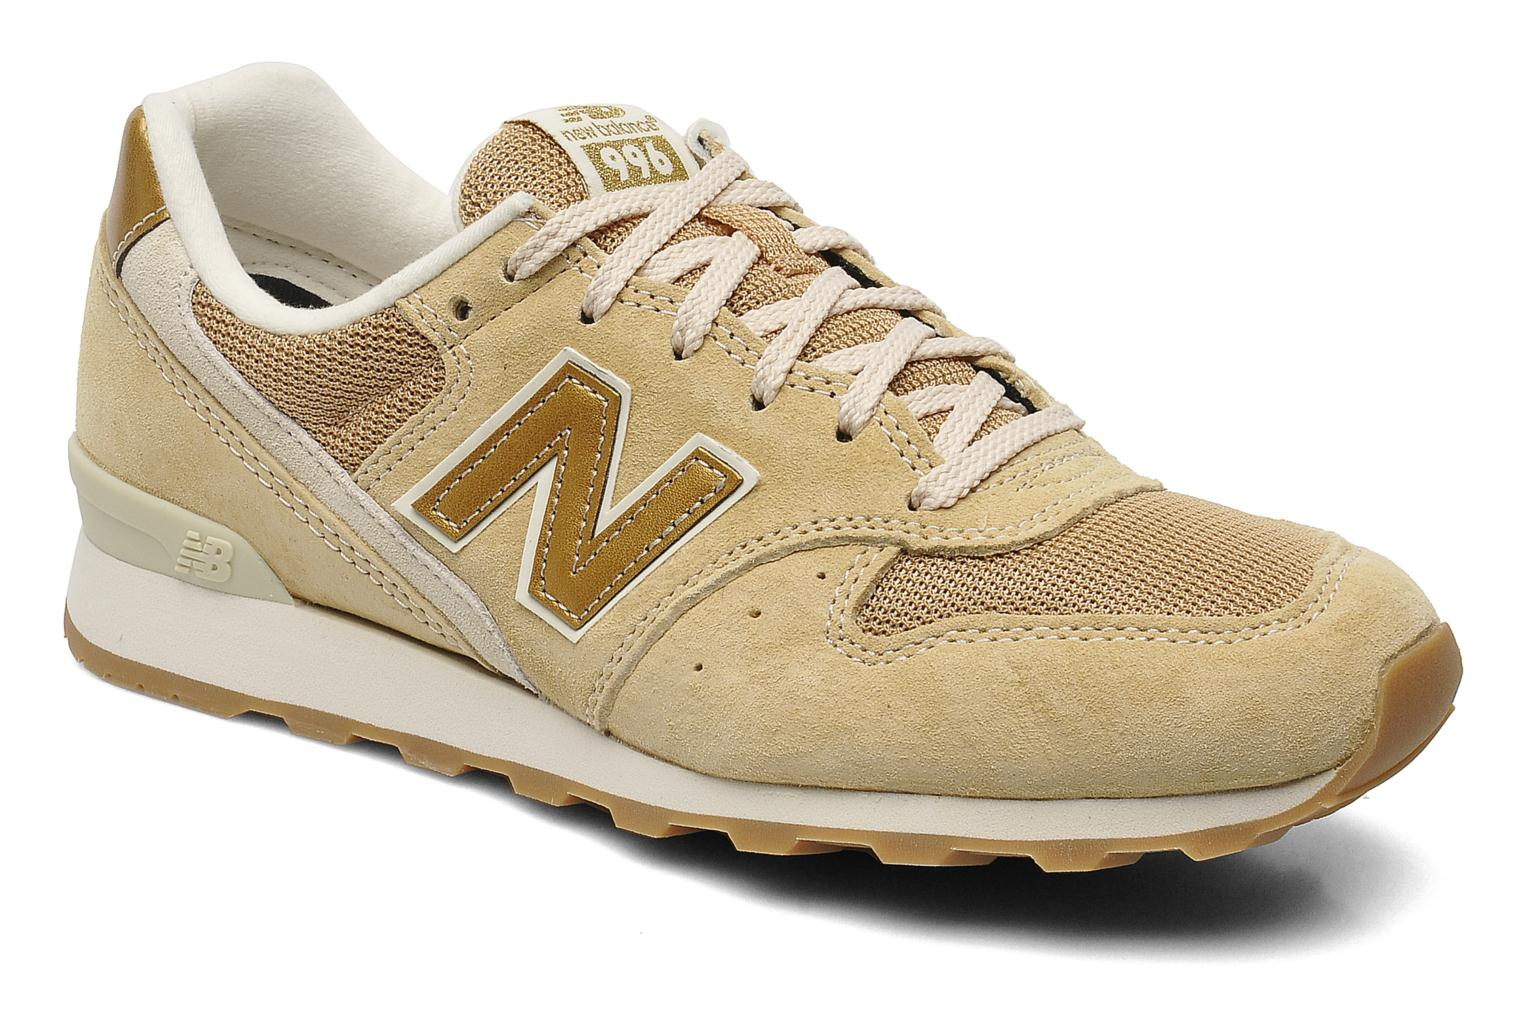 new balance wr996 trainers in beige at 201555. Black Bedroom Furniture Sets. Home Design Ideas